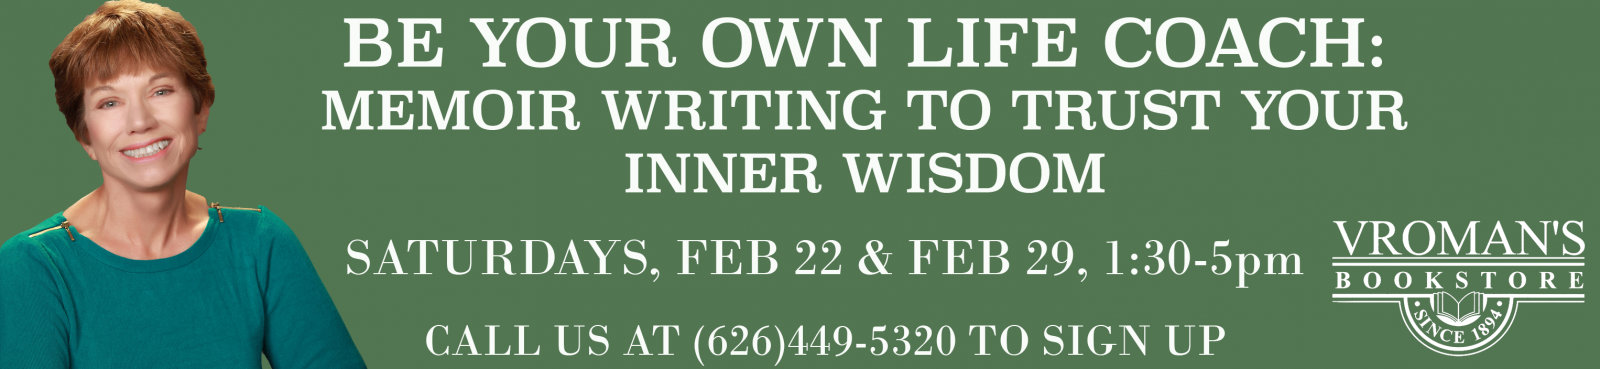 Be Your Own Life Coach: Memoir Writing to Trust Your Inner Wisdom, workshop with Ann Hamer